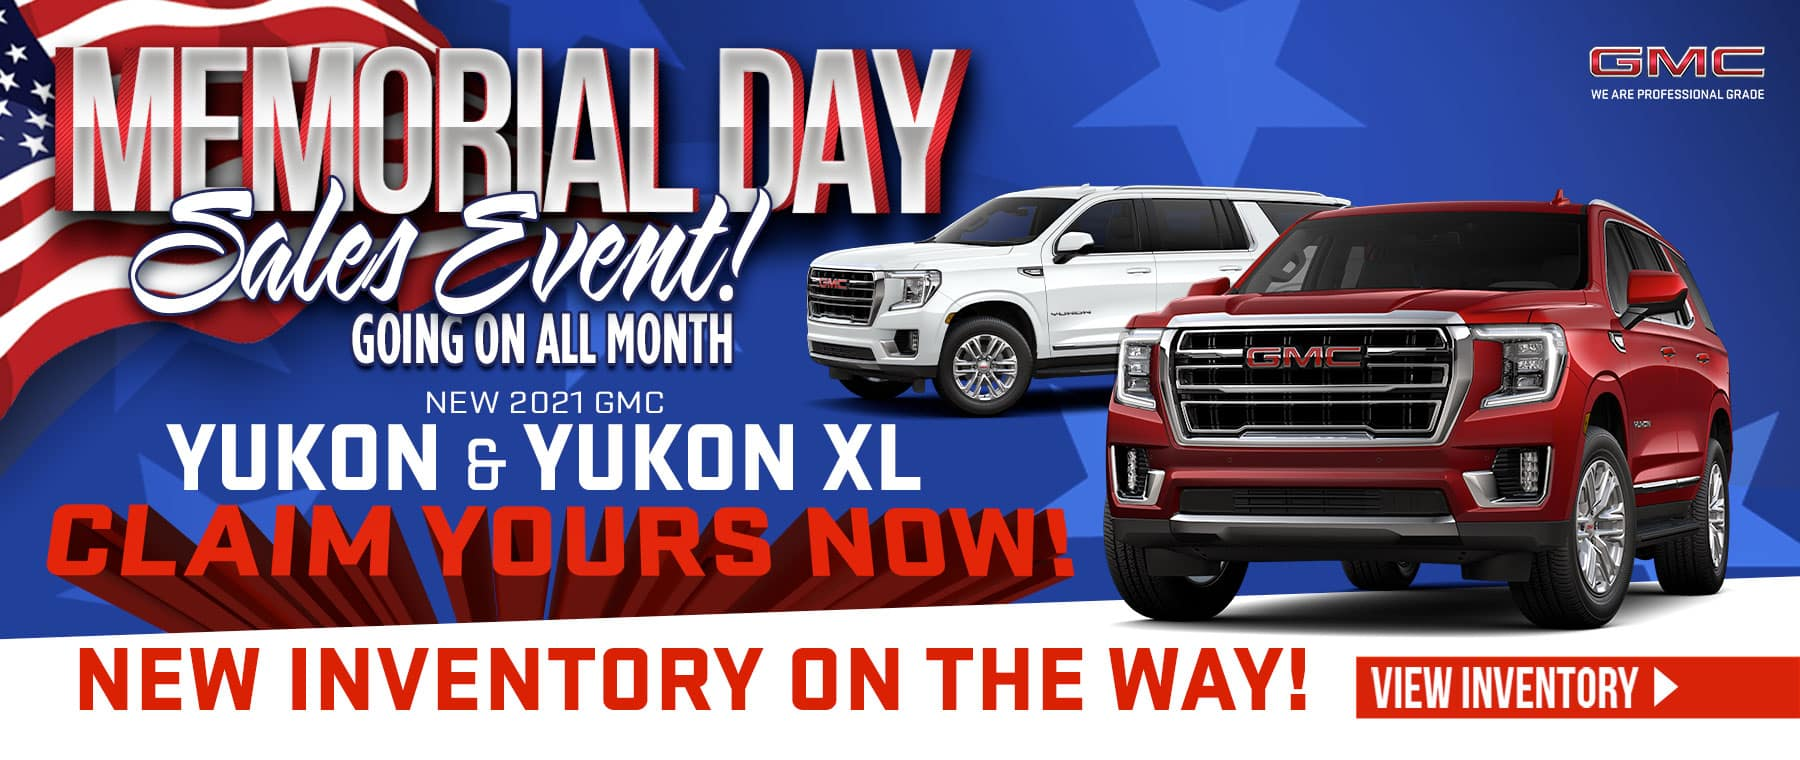 New 2021 GMC Yukon & Yukon XL - New inventory on the Way! Claim yours now